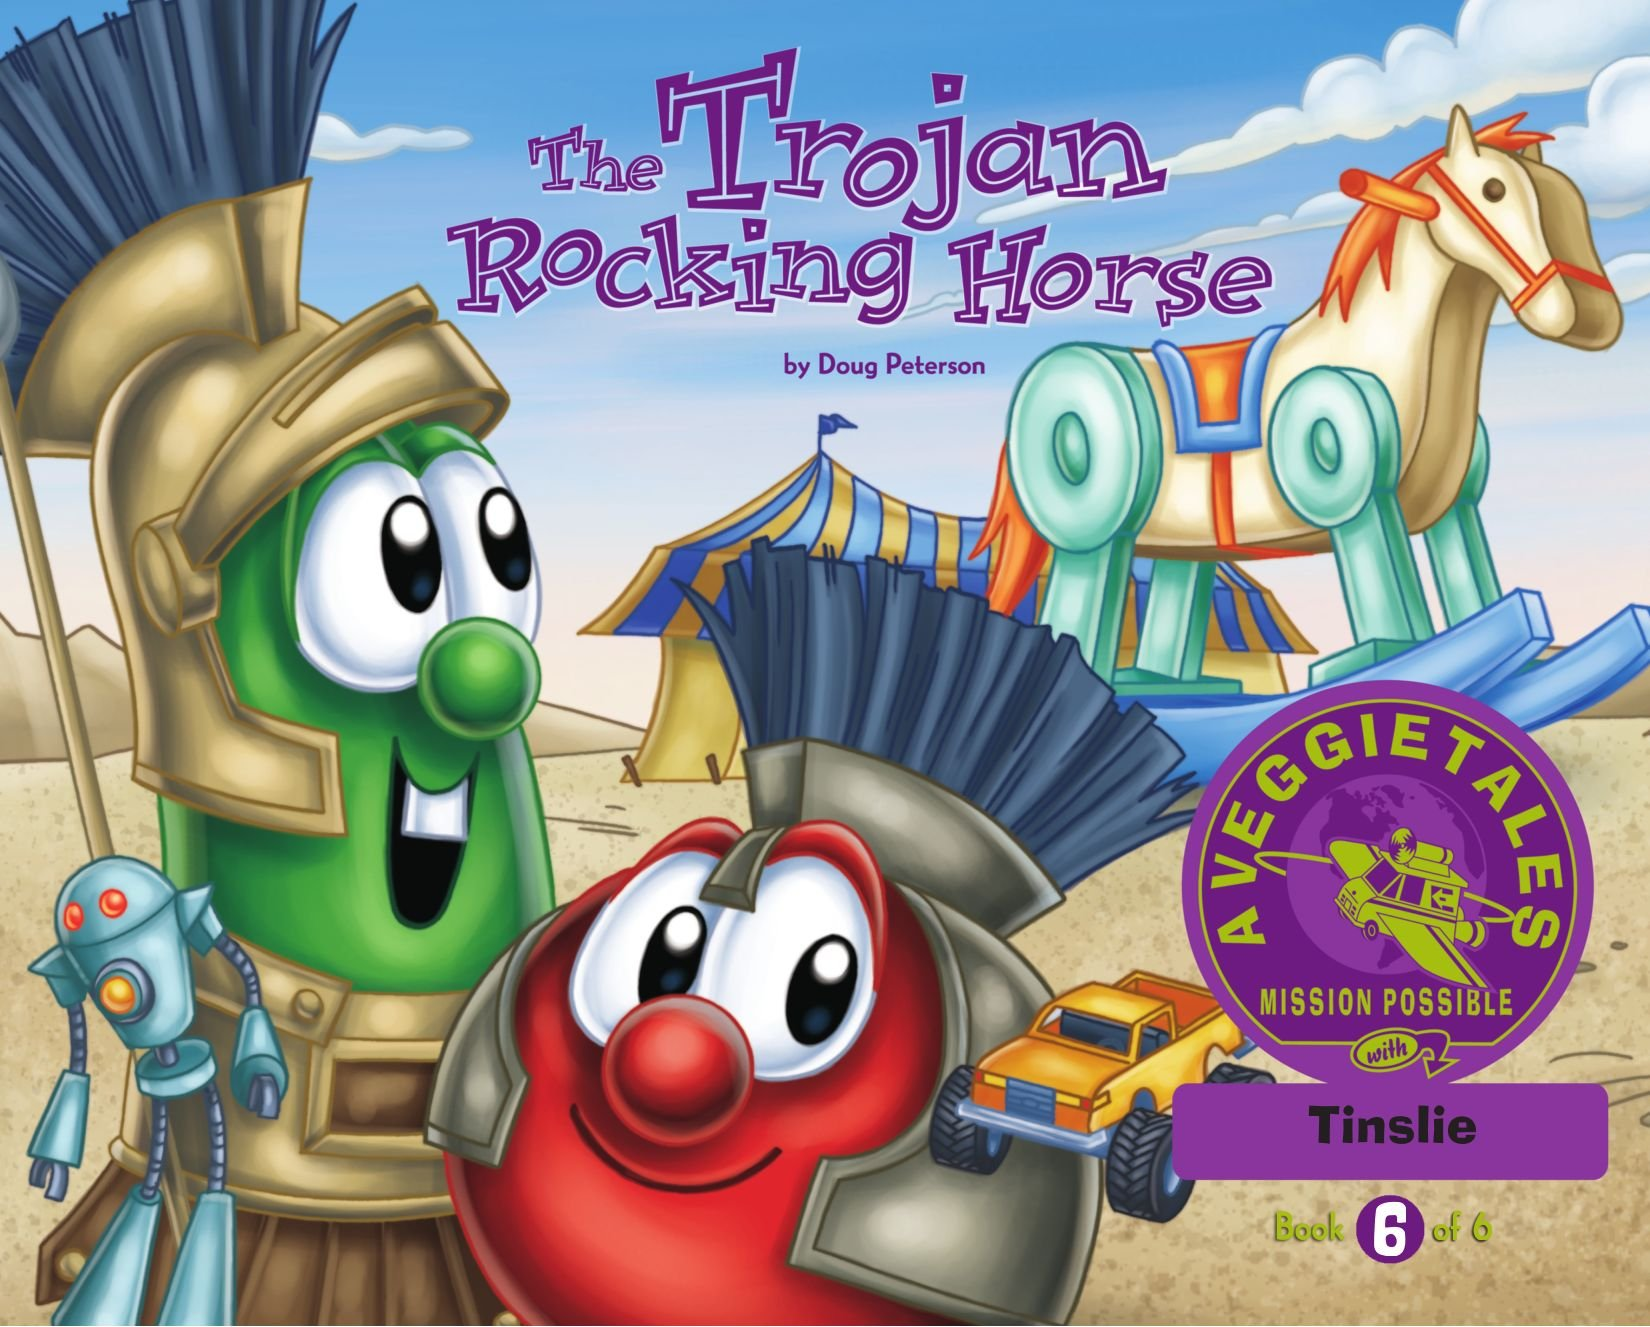 Download The Trojan Rocking Horse - VeggieTales Mission Possible Adventure Series #6: Personalized for Tinslie (Boy) PDF